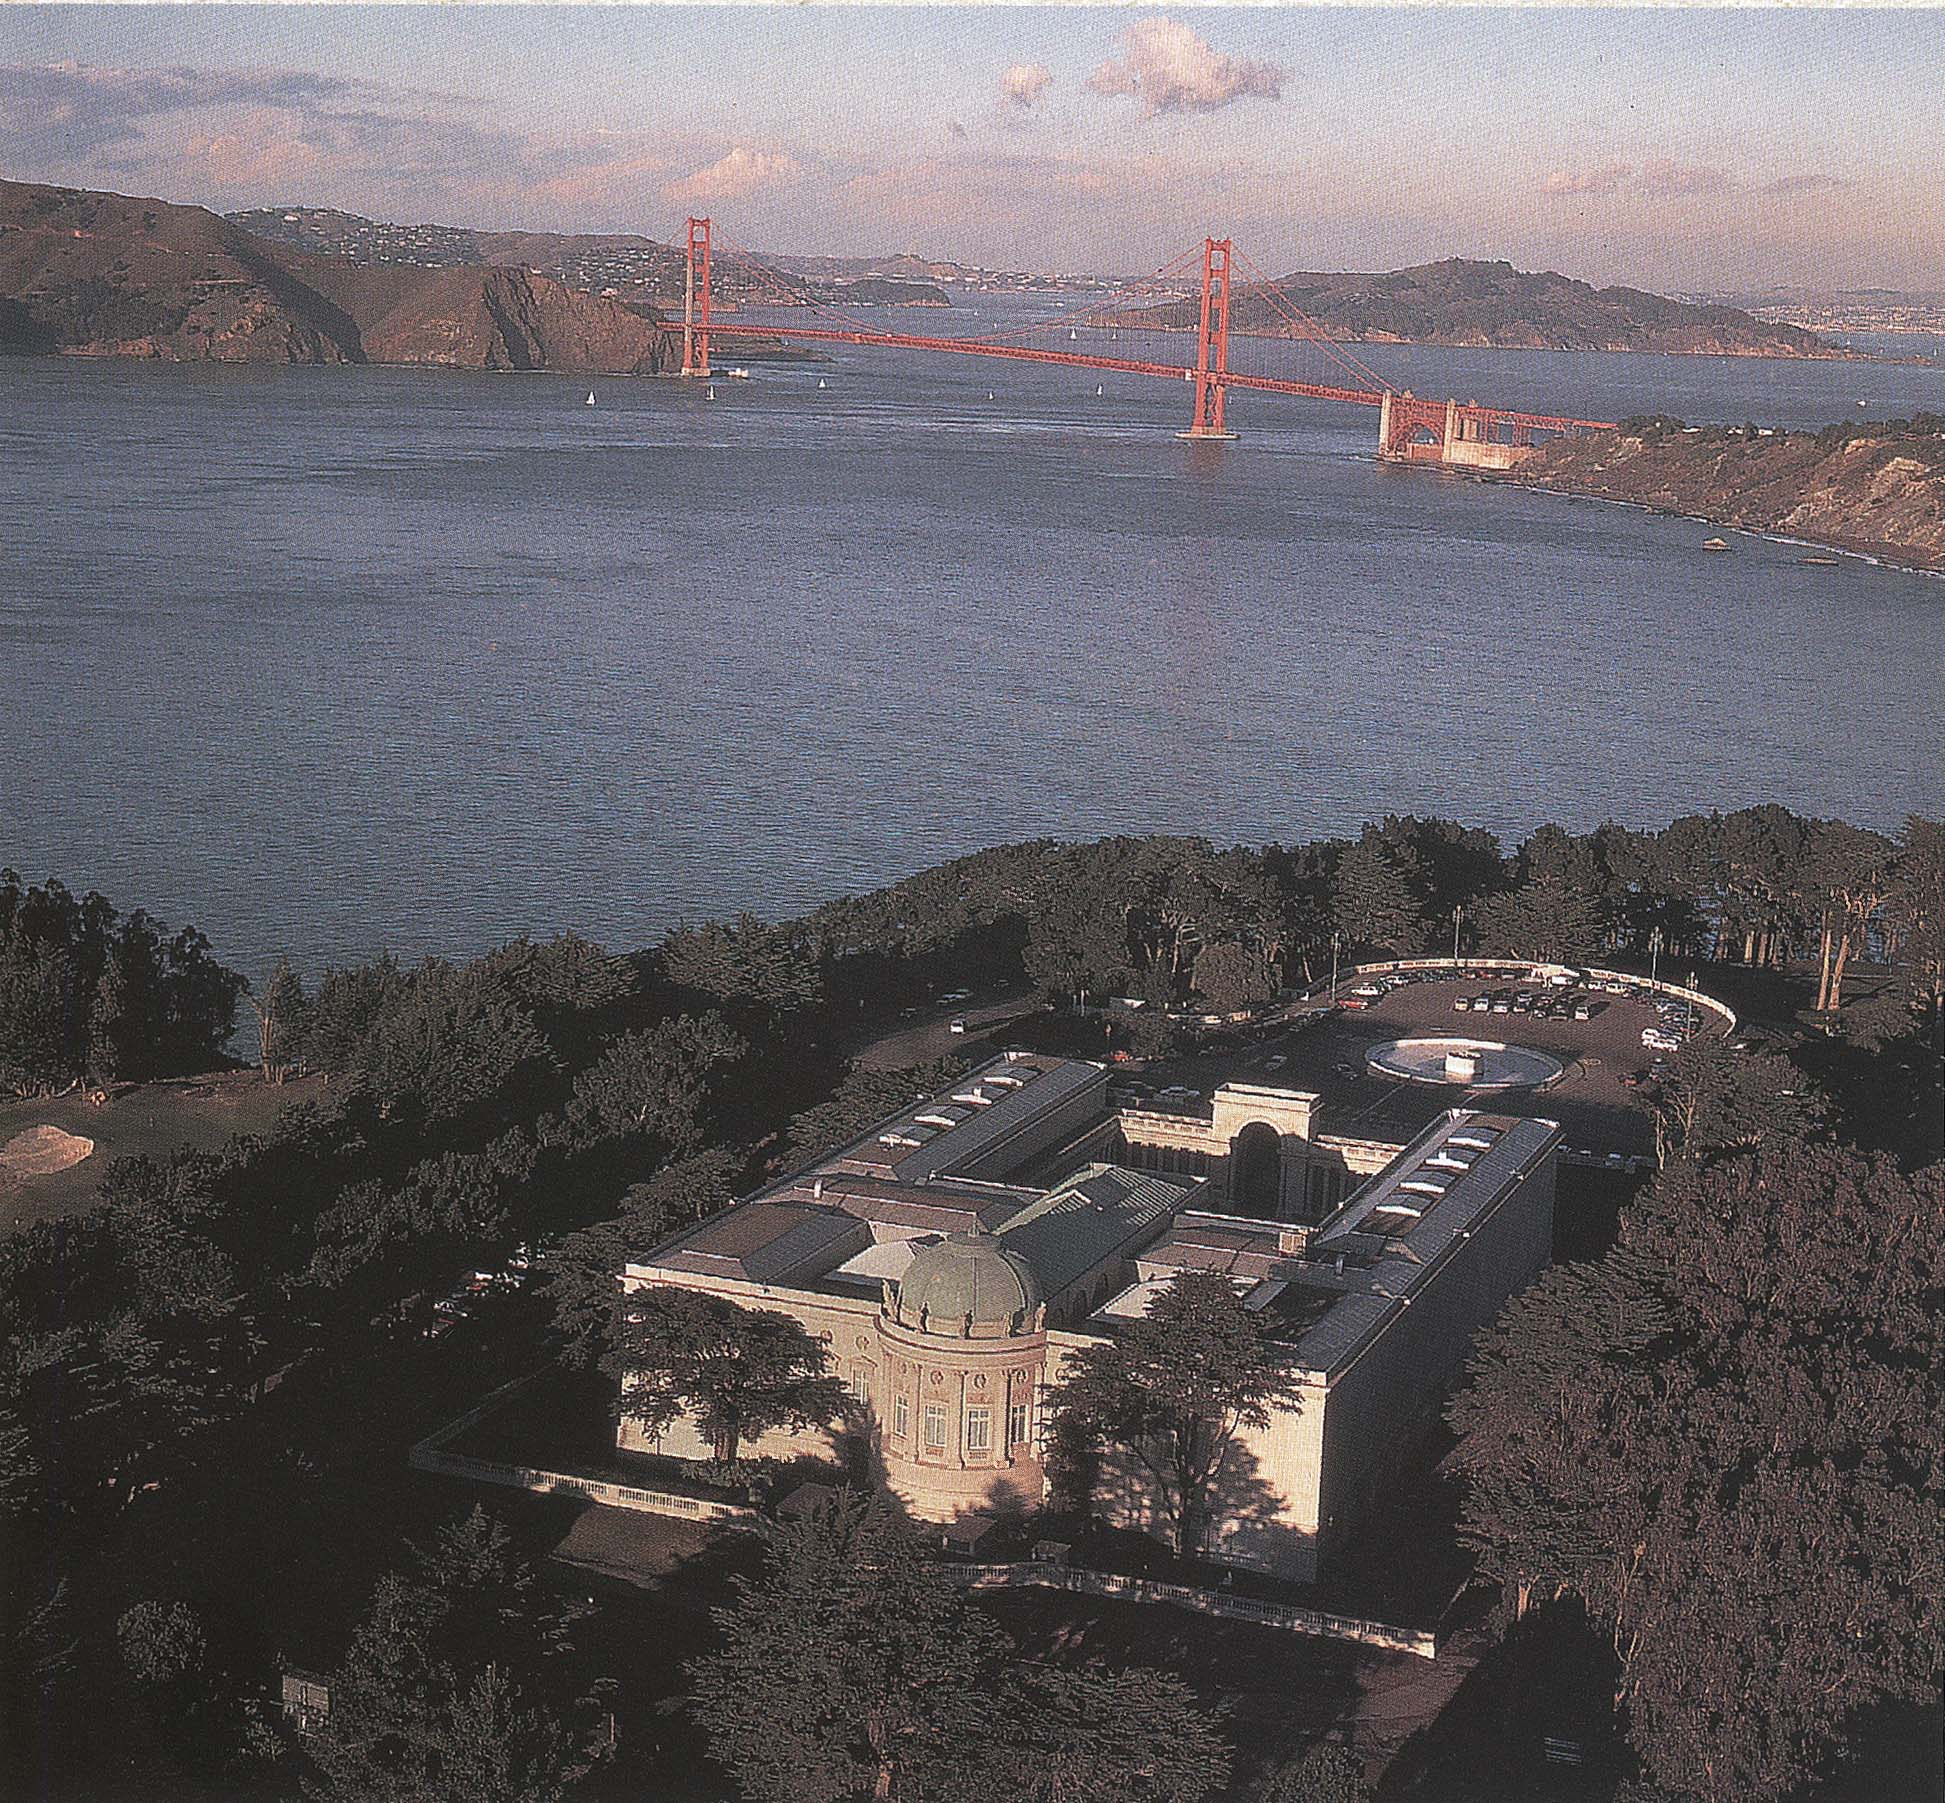 Aerial view of Legion of Honor museum